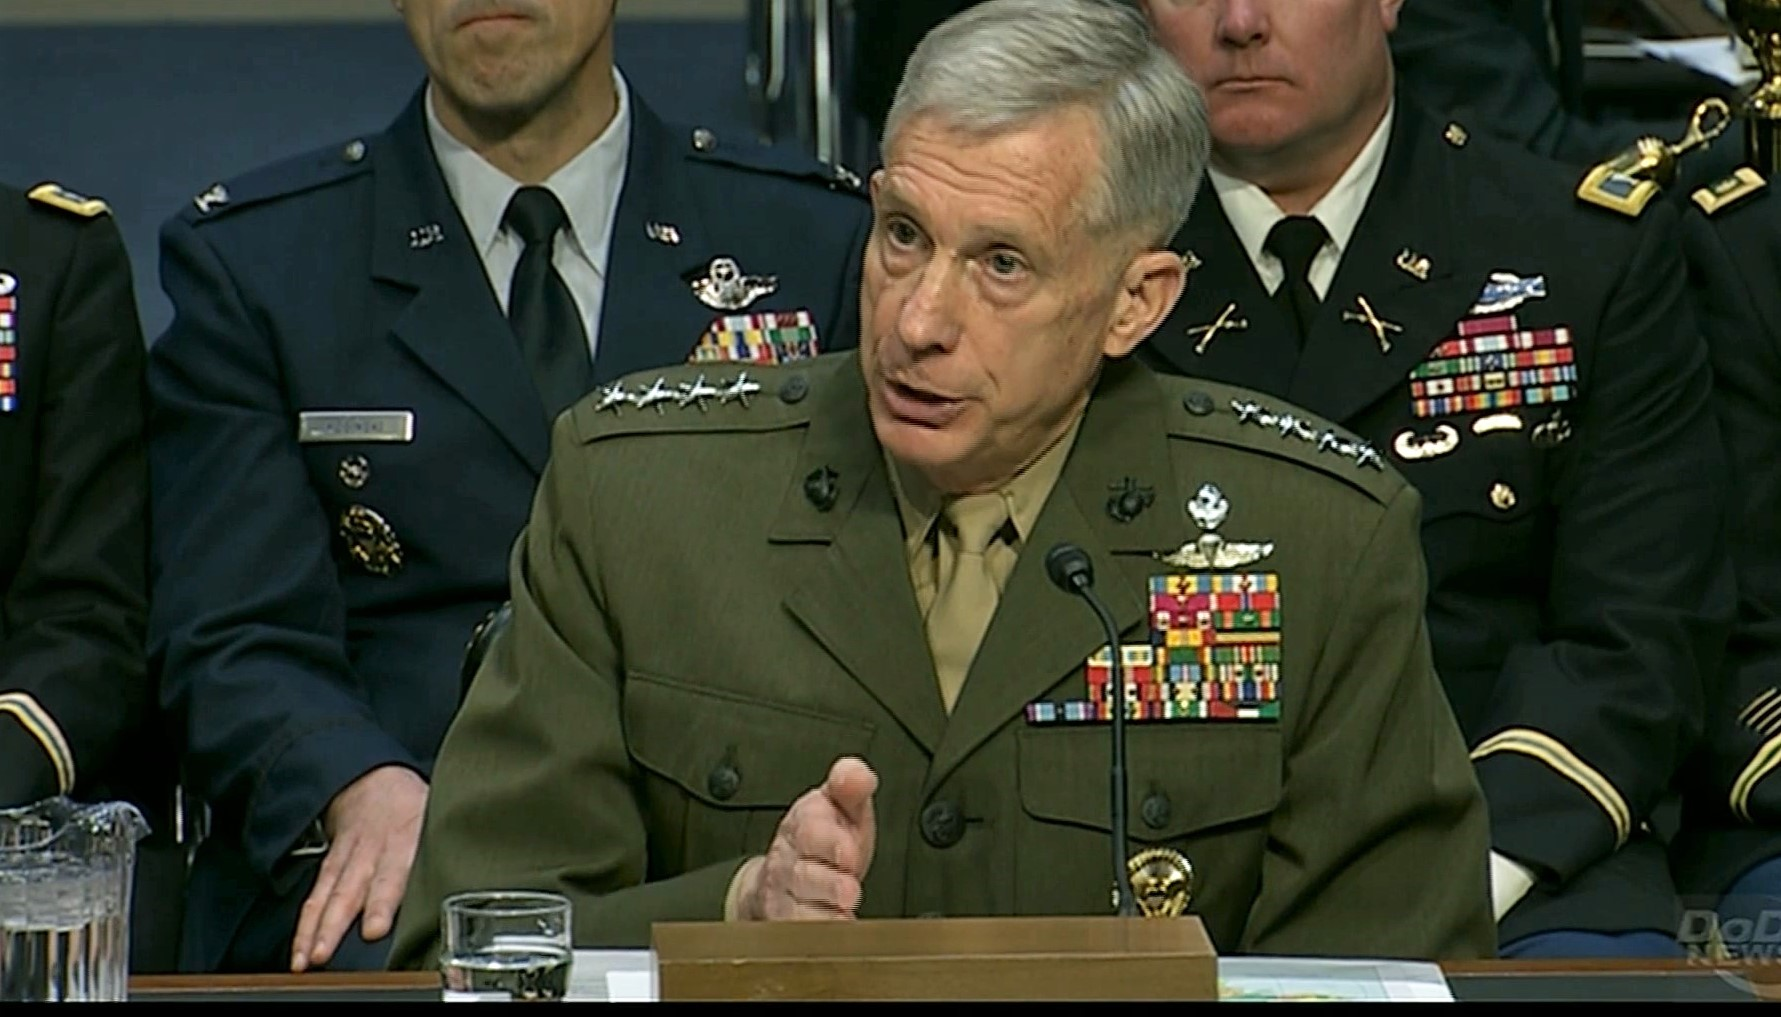 Gen. Thomas D. Waldhauser, Commander, U.S. Africa Command, appears before the Senate Armed Services Committee to deliver the 2018 U.S. Africa Command Posture Statement, March 13, 2018, Washington, D.C.